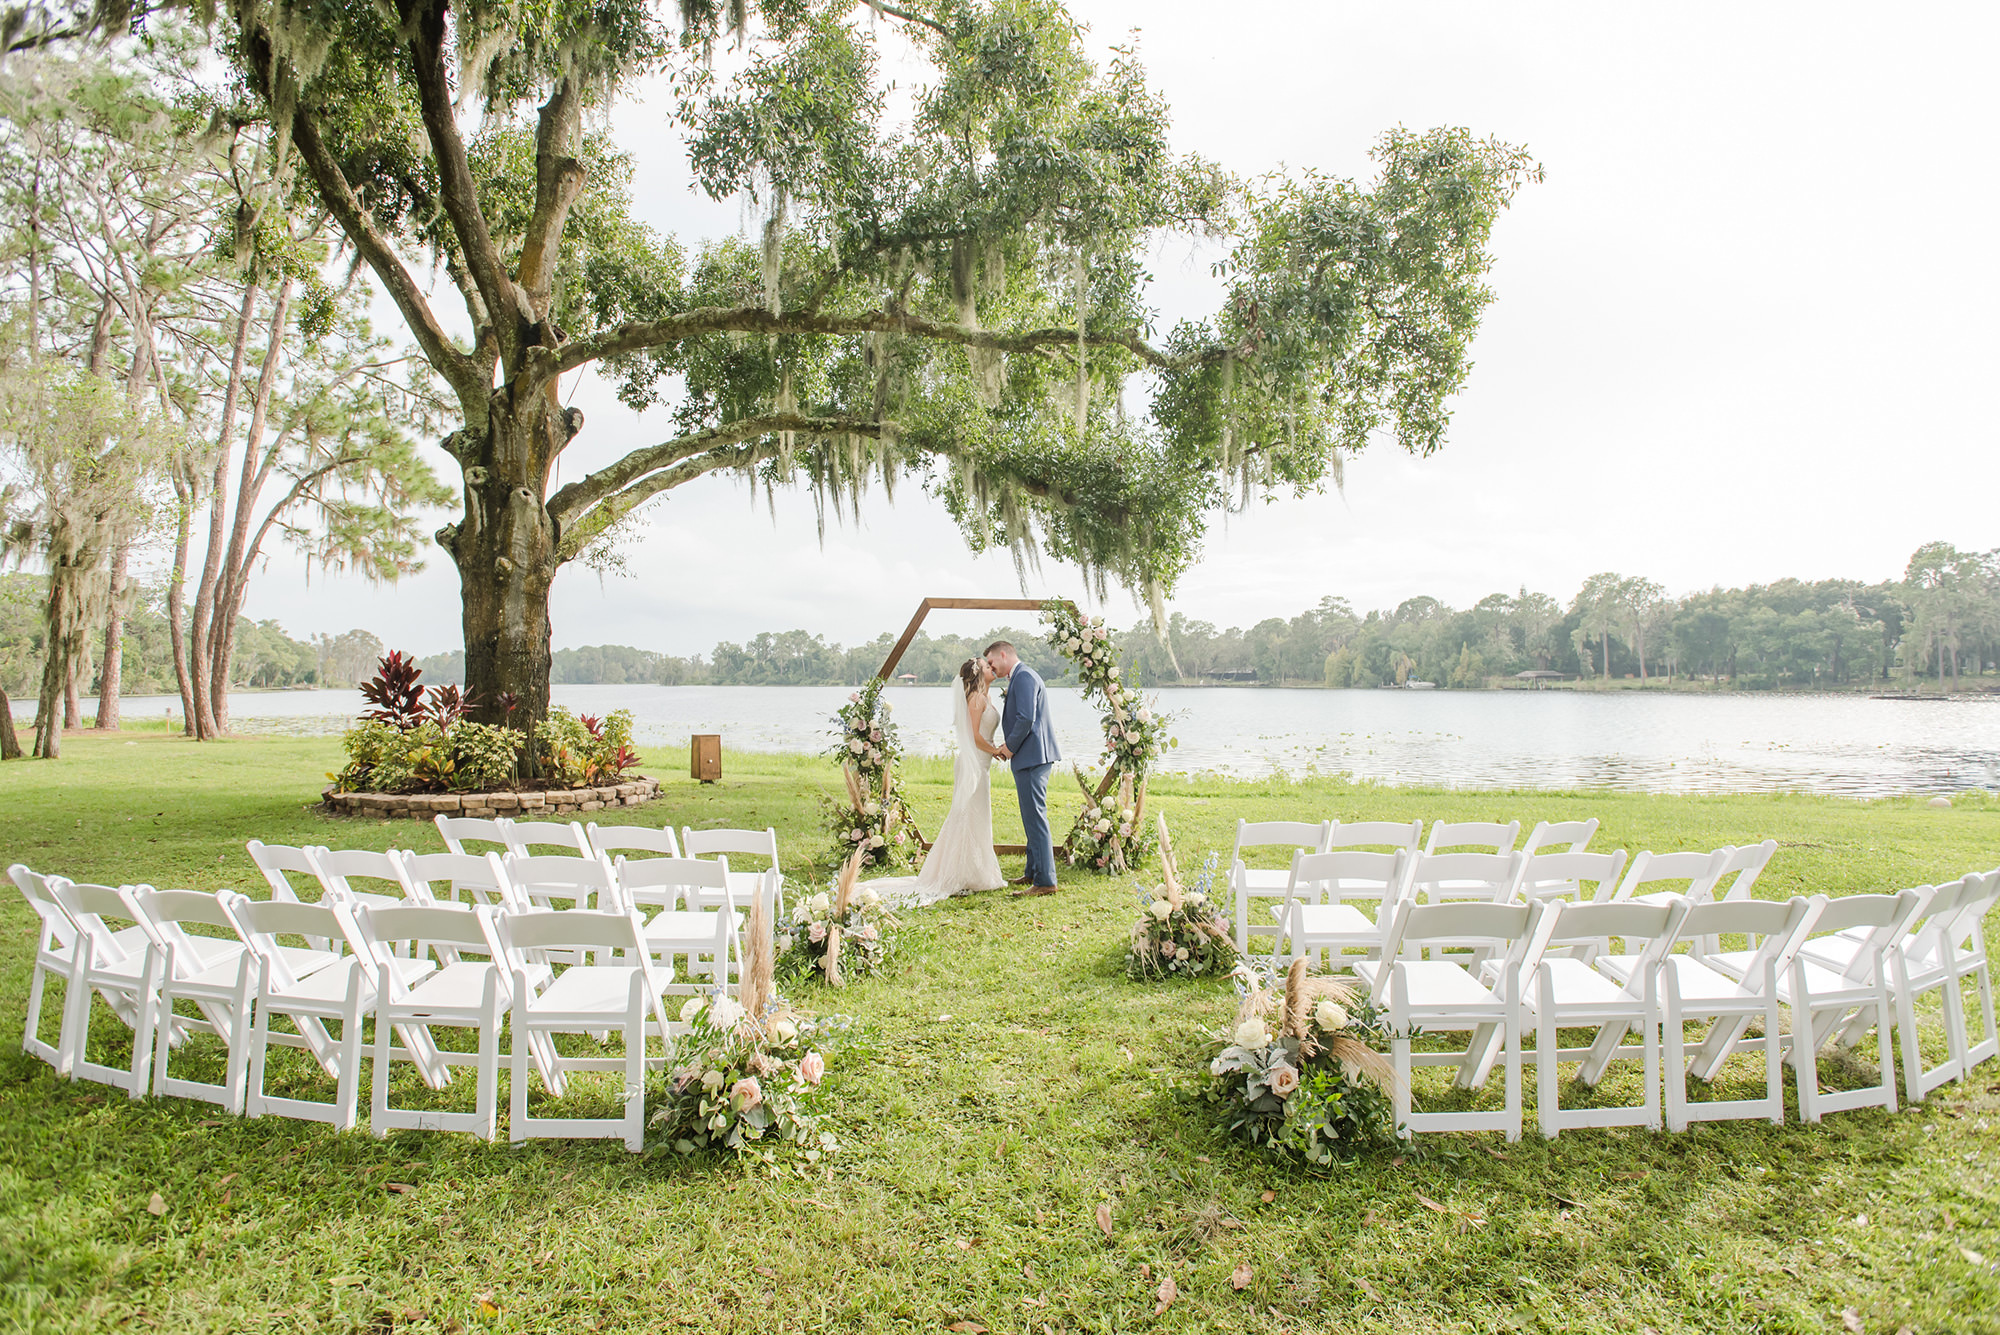 Florida Bride and Groom Kiss During Outdoor Waterfront Wedding Ceremony, Under Large Flowing Oak Tree, Rustic Wooden Hexagon Wedding Arch with Whimsical Inspired White and Dusty Rose and Pompous Grass Ceremony Flowers, White Chairs for Intimate Lakefront Ceremony   Tampa Bay Wedding Planner and Day of Coordinator Elegant Affairs by Design   Venue Barn at Crescent Lake